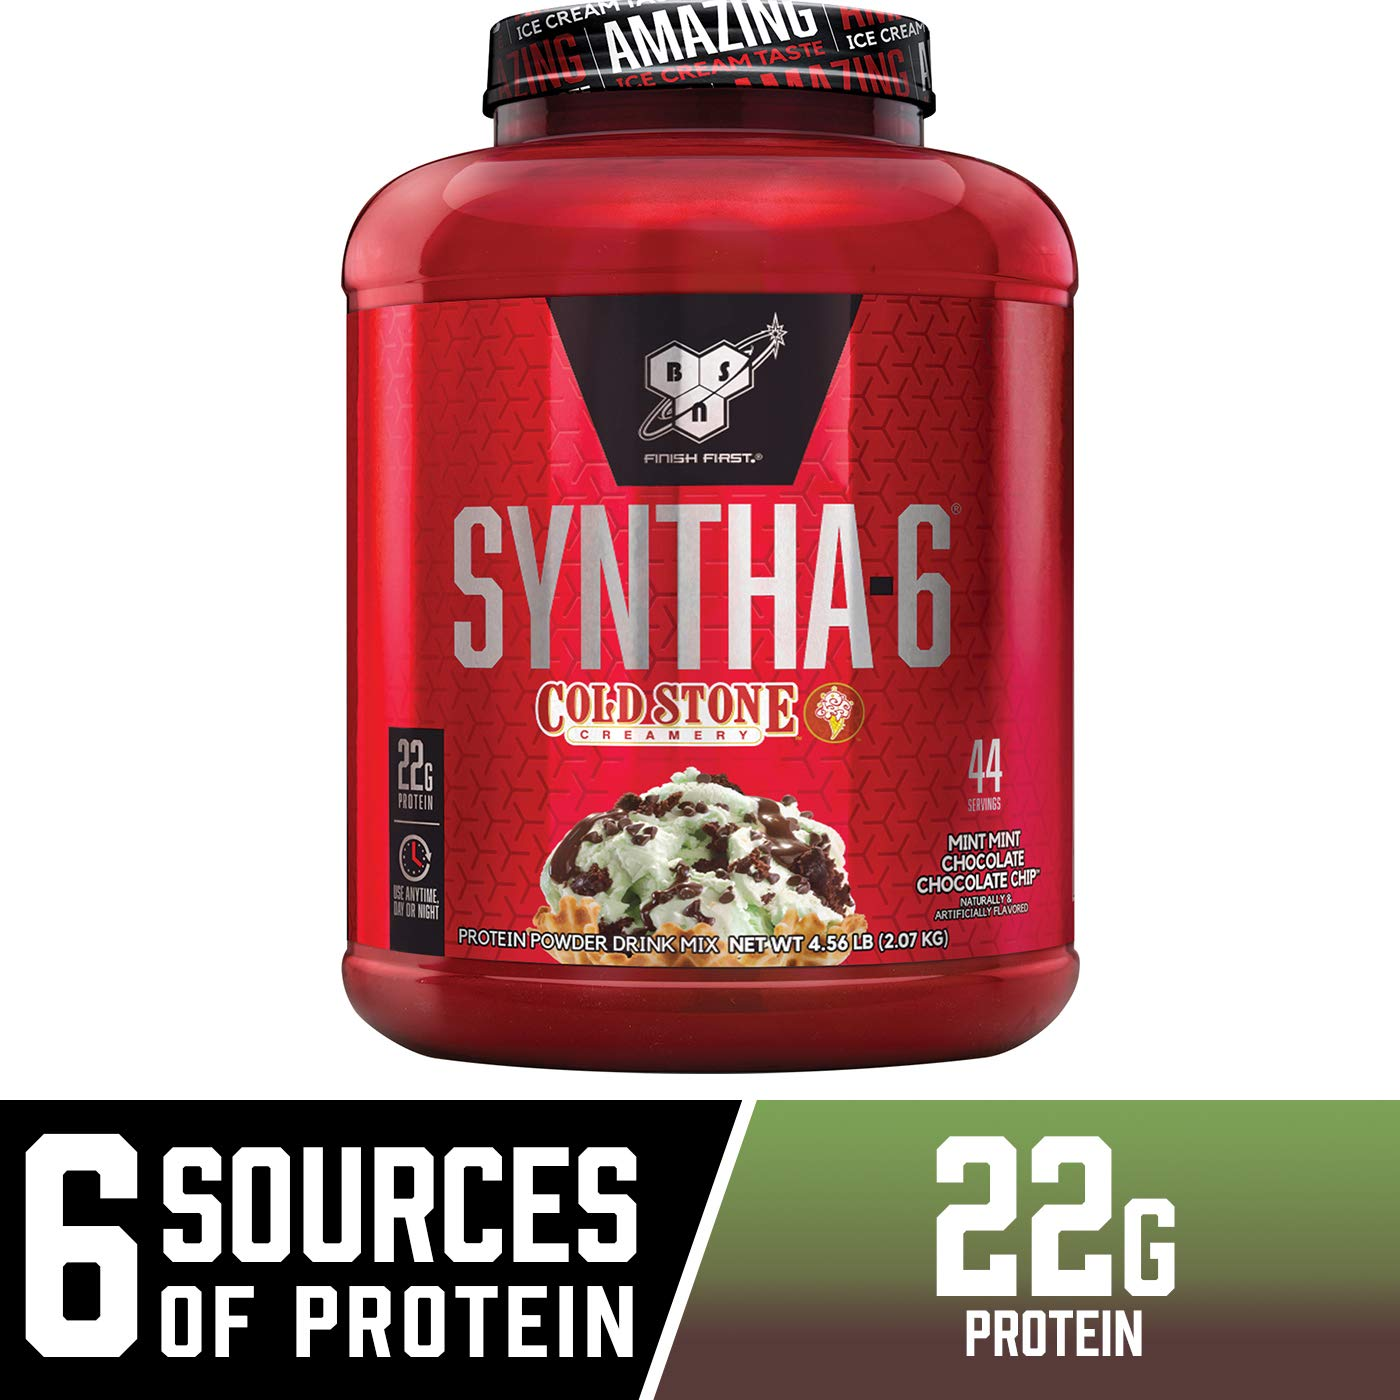 BSN Syntha-6 Whey Protein Powder, Cold Stone Creamery- Mint Mint Chocolate Chocolate Cake Flavor, Micellar Casein, Milk Protein Isolate Powder, 44 Servings